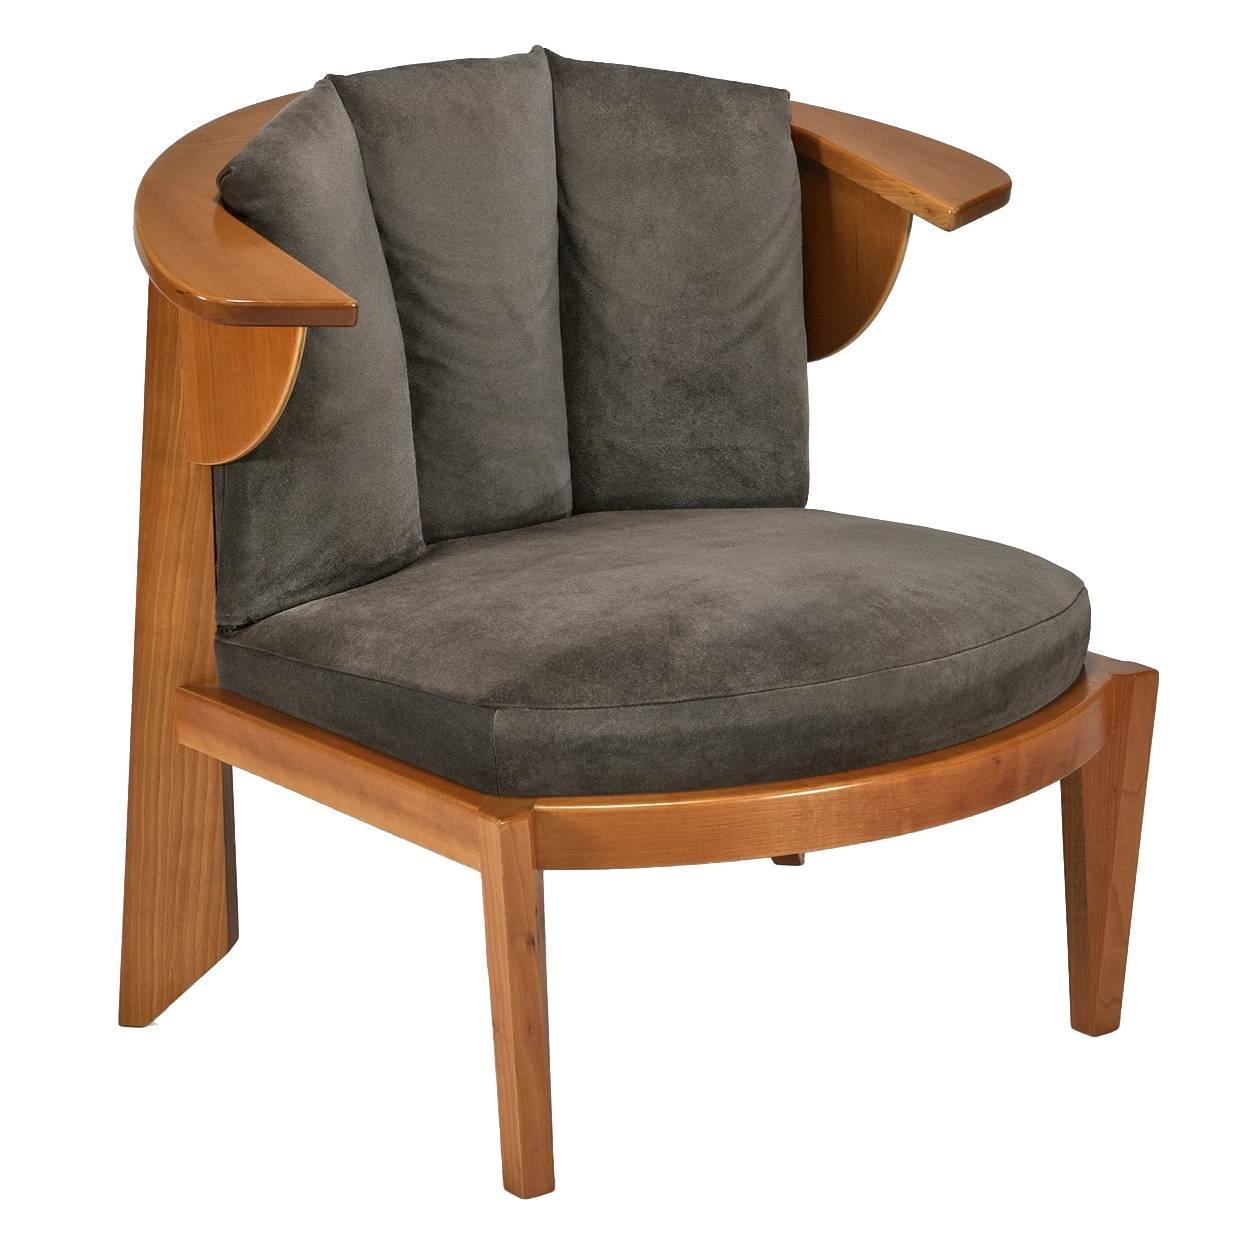 Friedman Chair By Frank Lloyd Wright For Cassina At 1stdibs